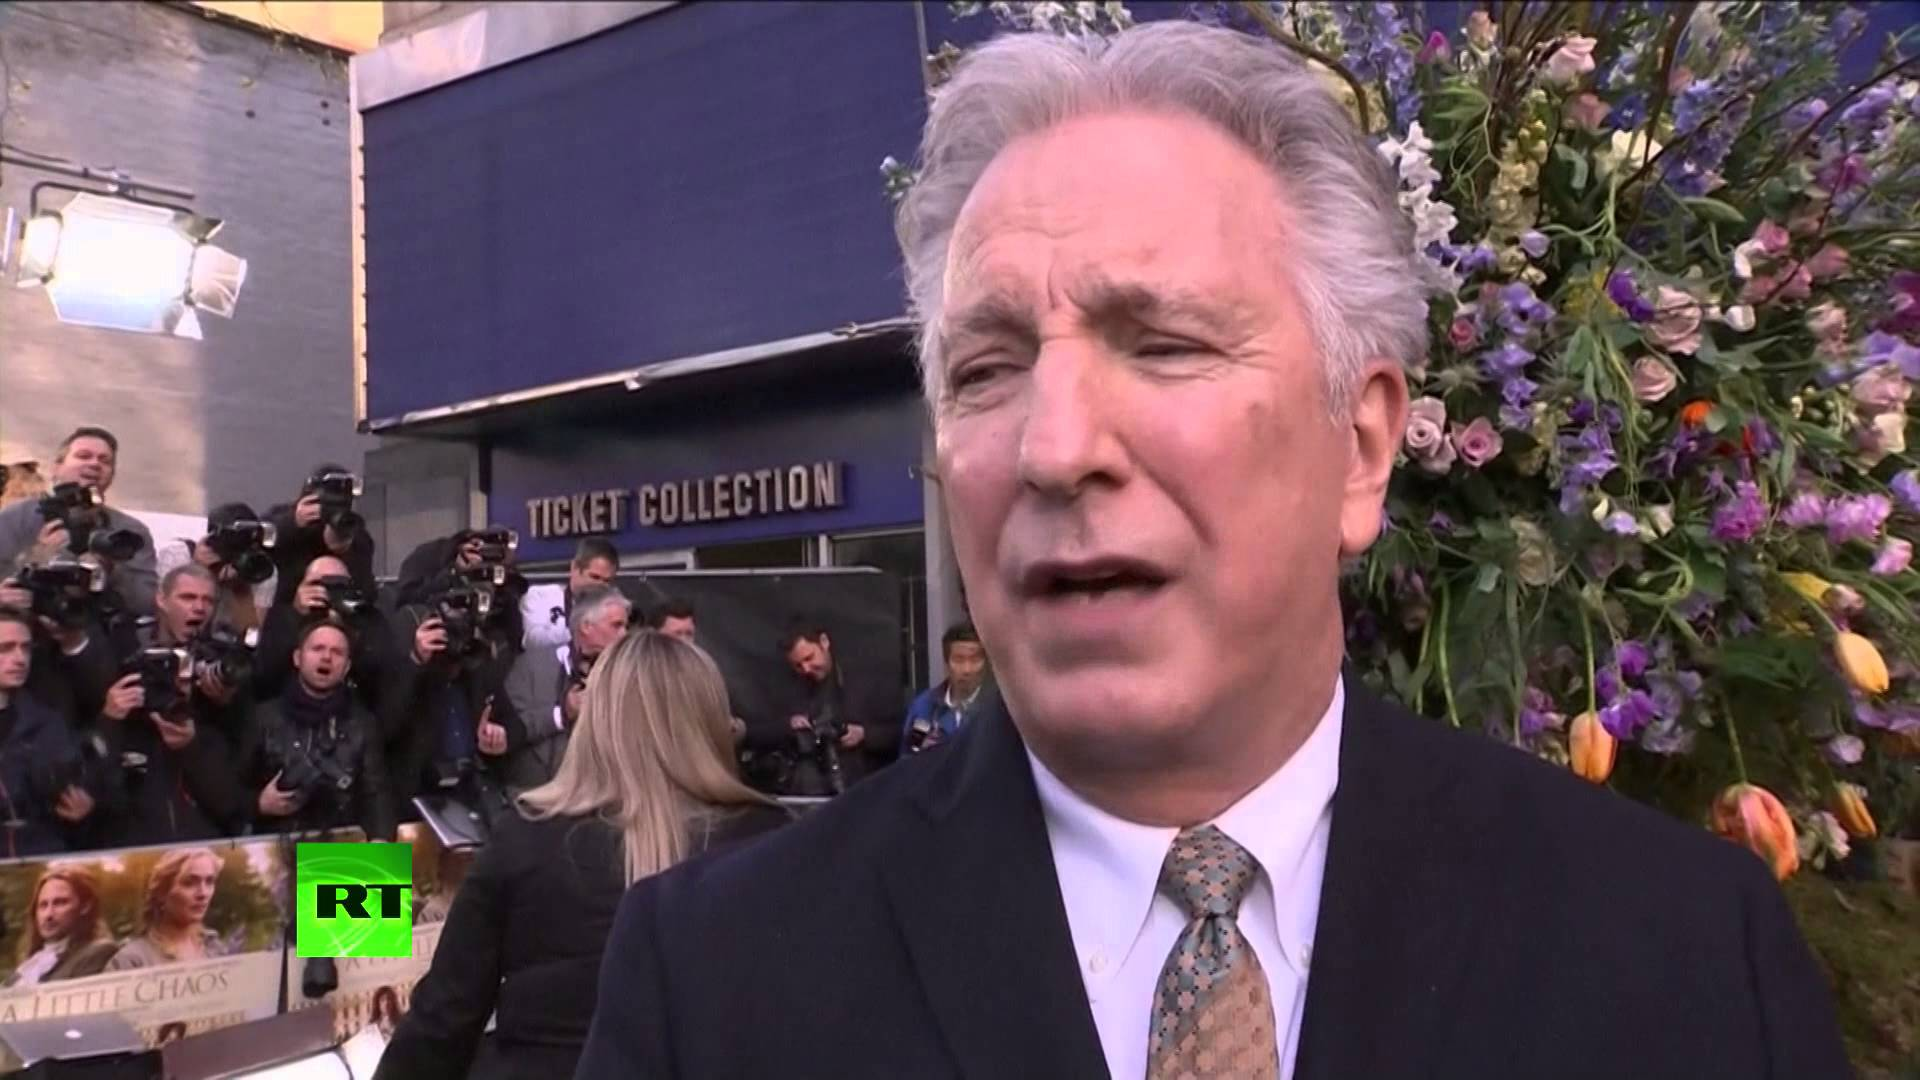 RIP Alan Rickman who died today from cancer 25